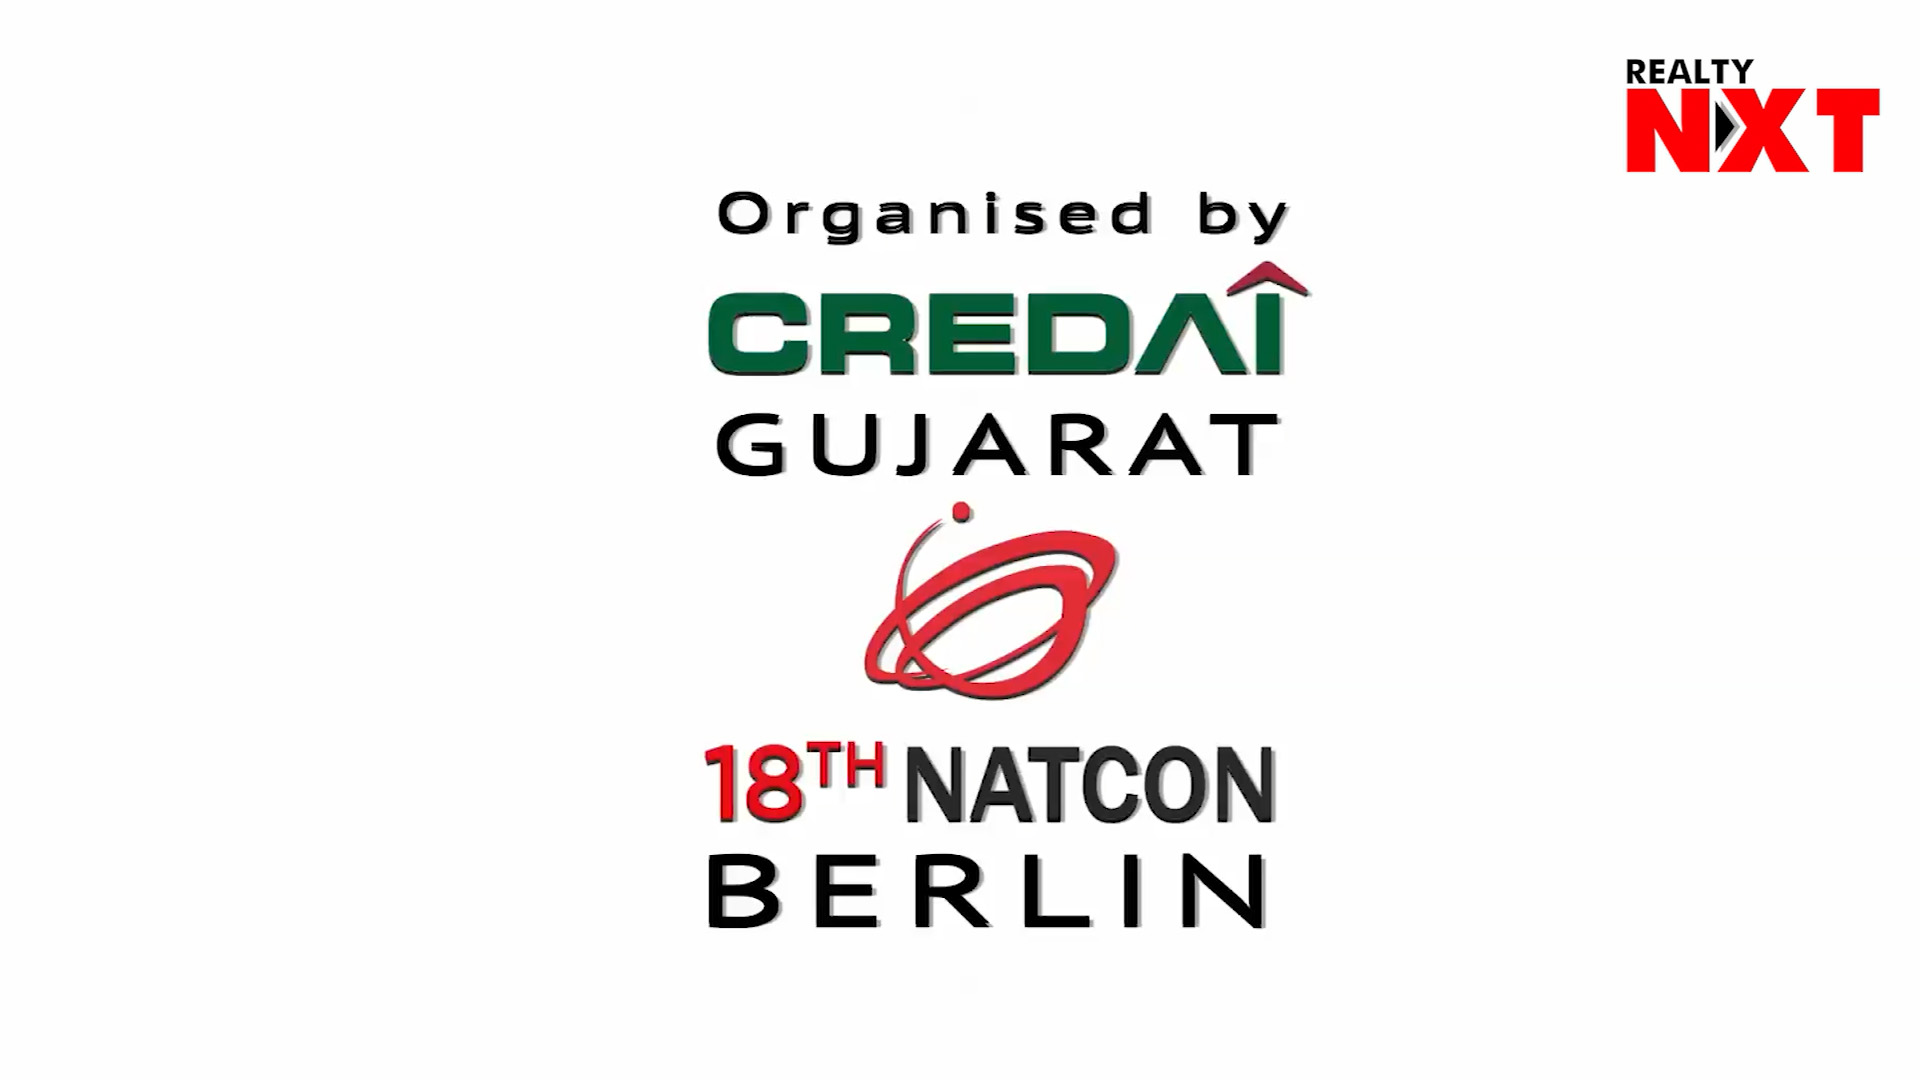 CREDAI NATCON - The 18th Edition Of International Convention